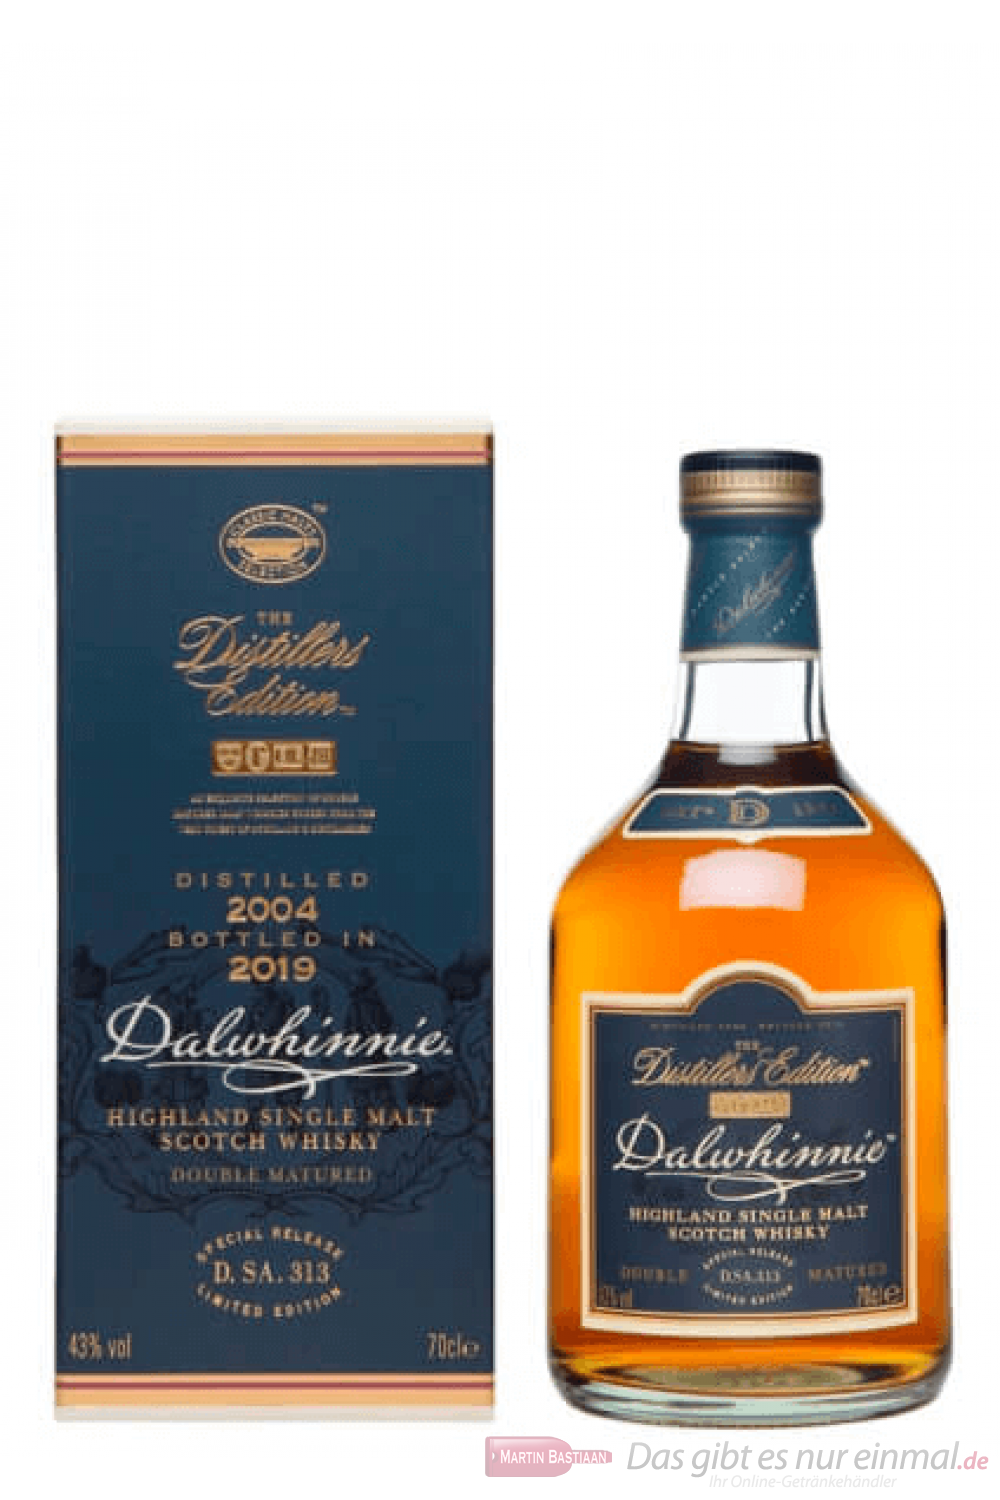 Dalwhinnie Distillers Edition 2019 / 2004 Single Malt Scotch Whisky 0,7l